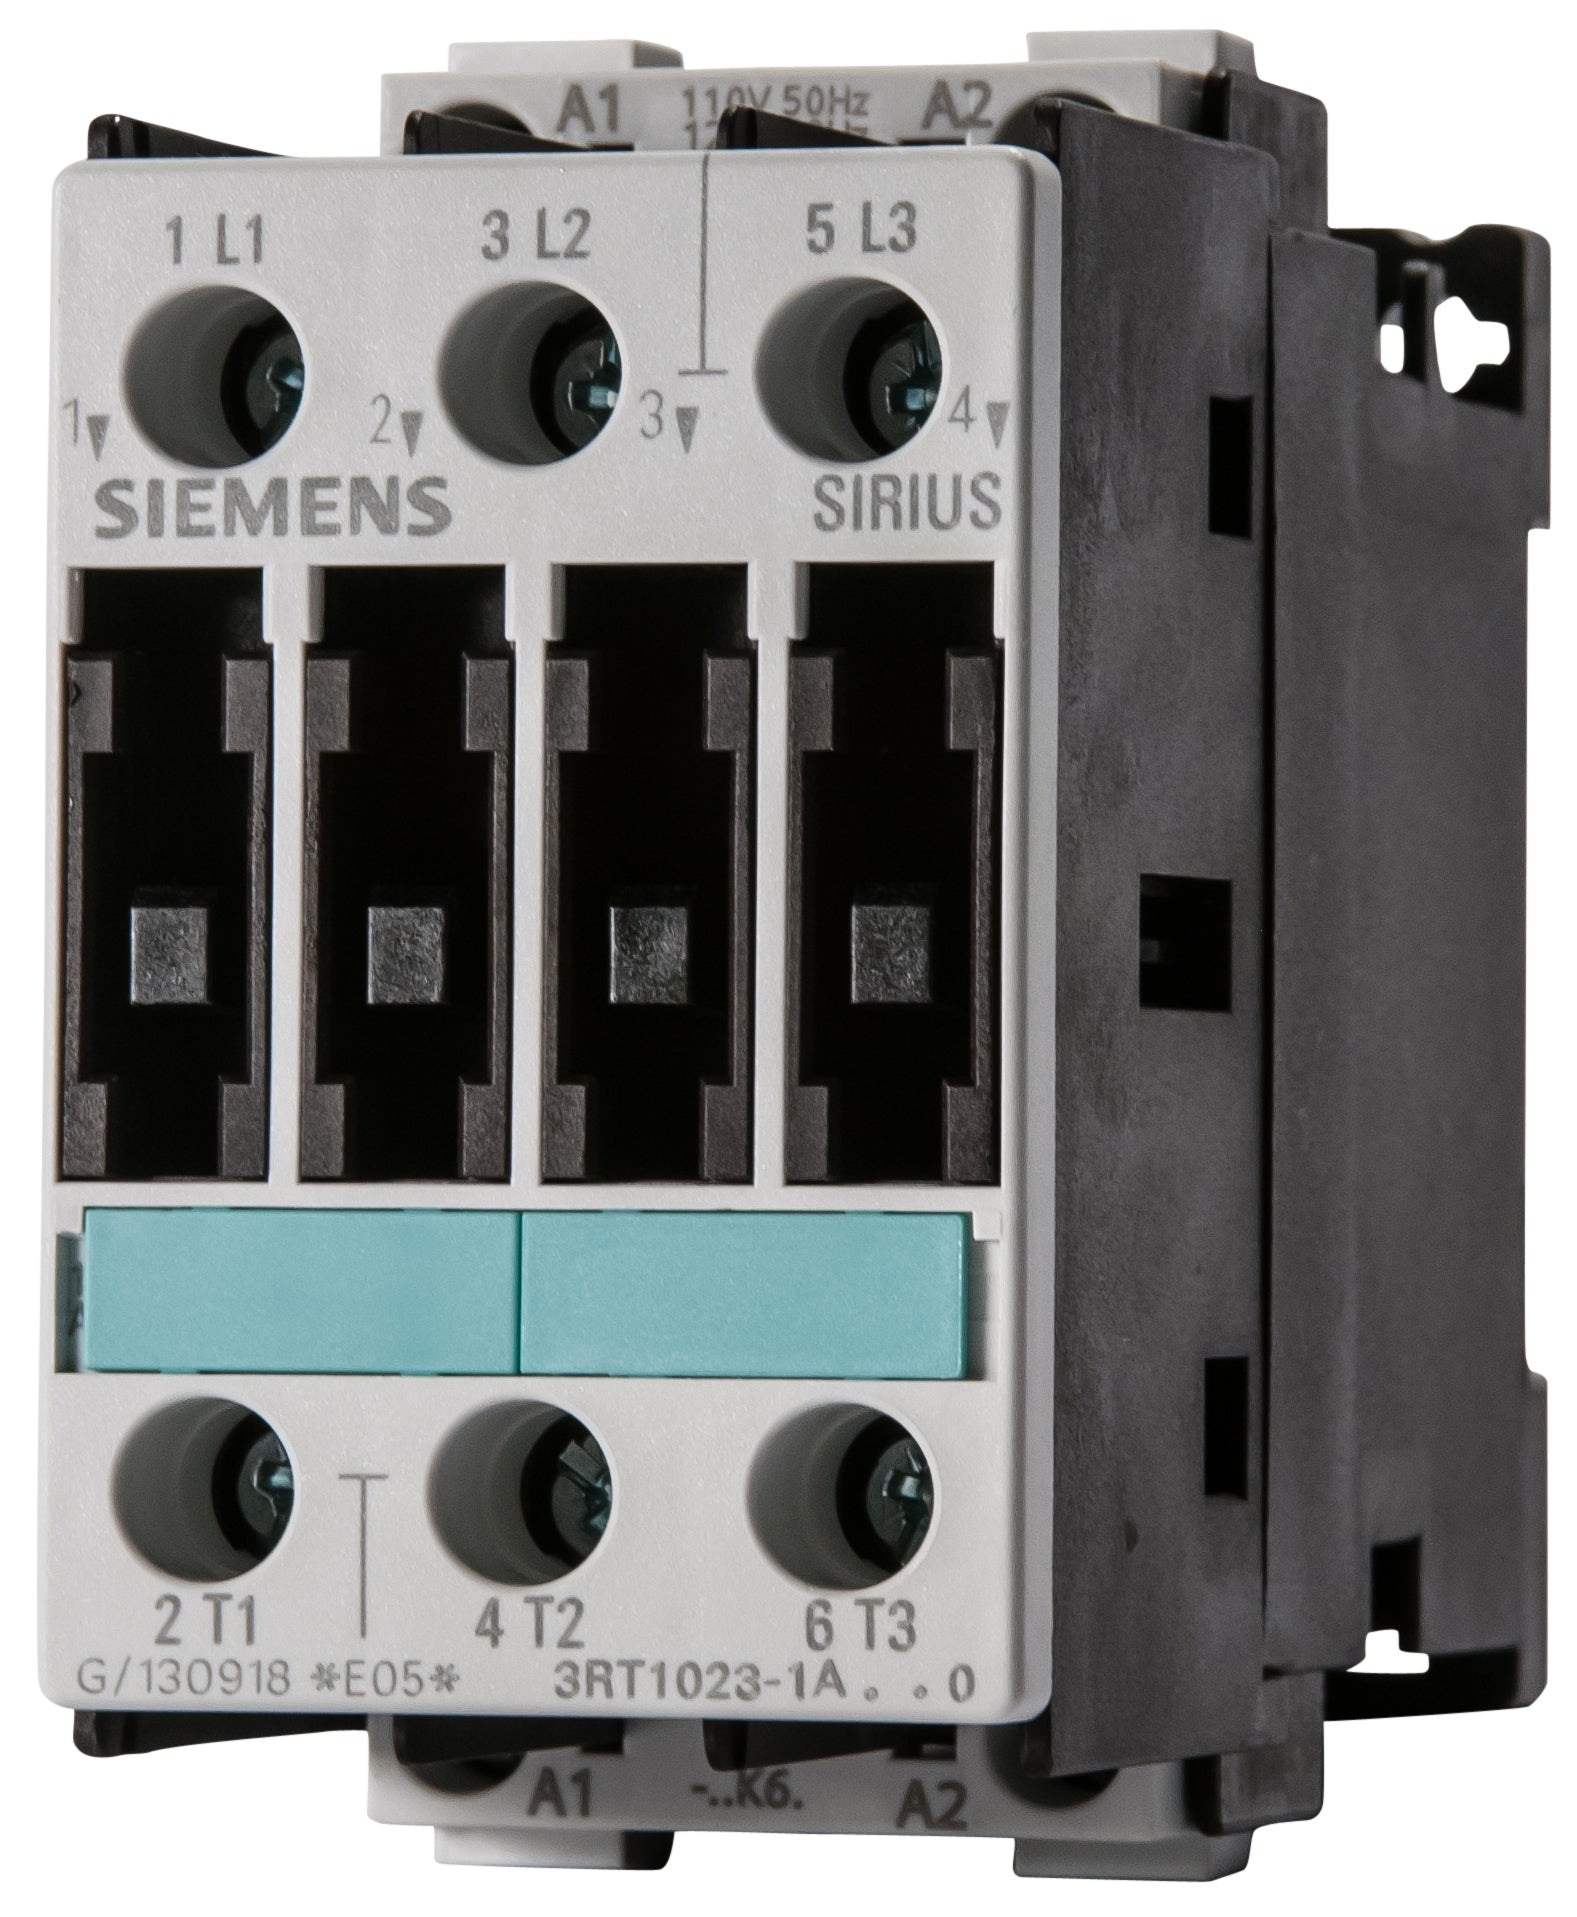 Wiring Diagram Contactor Siemens Datasheet Furnas Pretty Ruud Pictures Inspiration Design